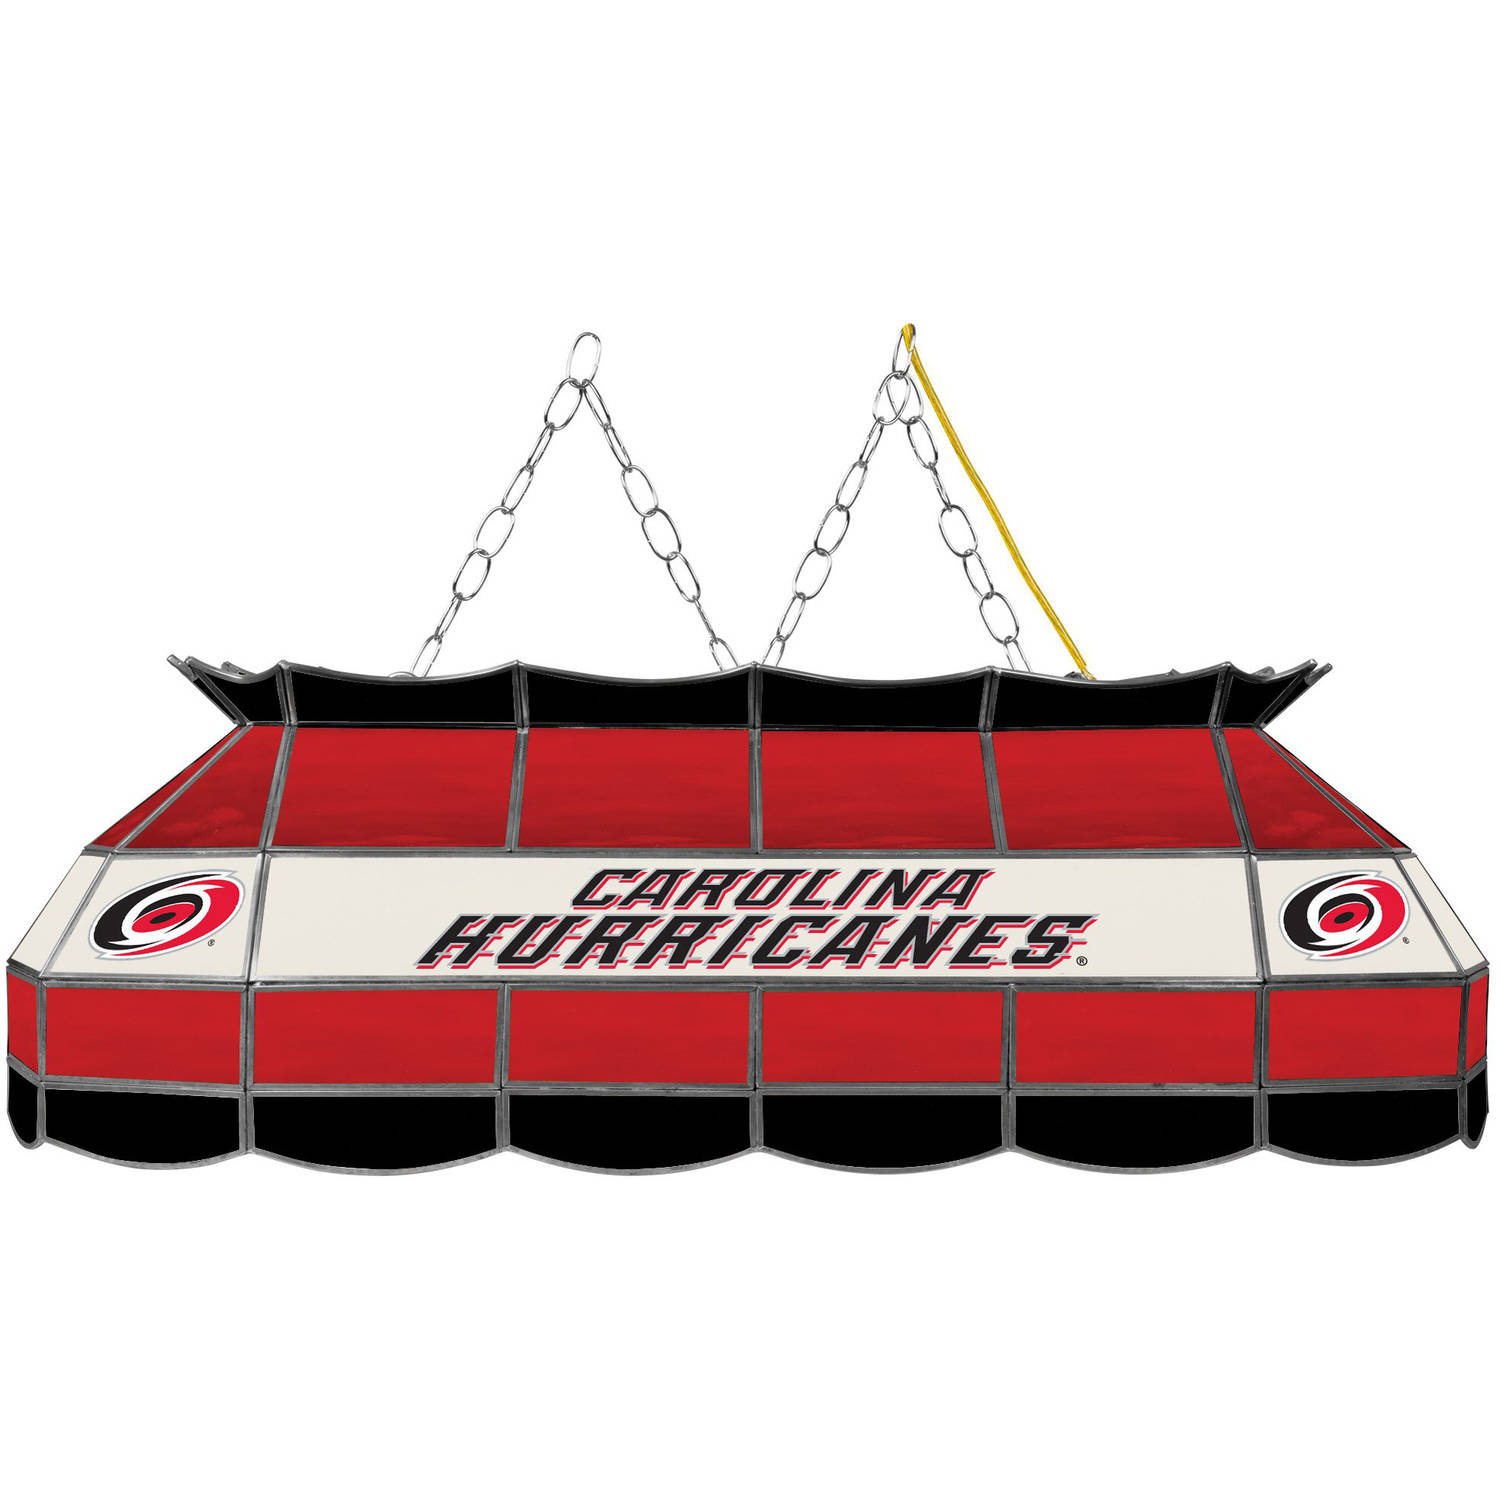 "NHL Handmade Tiffany Style Lamp, 40"", Carolina Hurricanes"